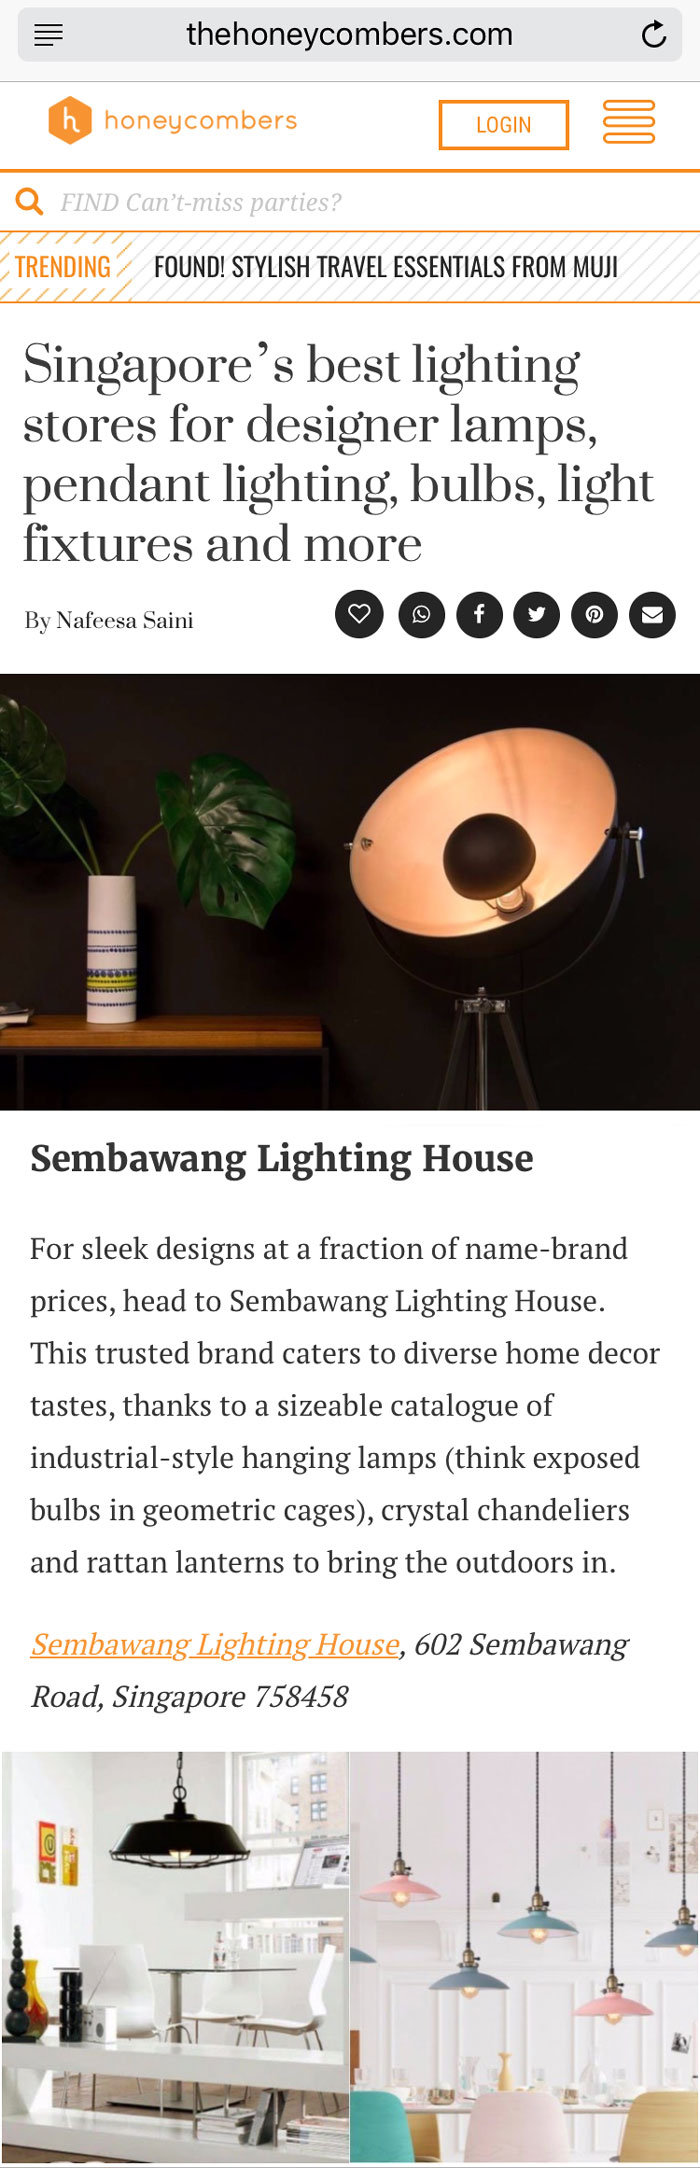 honeycombers-sembawang-lighting-house-review.jpg